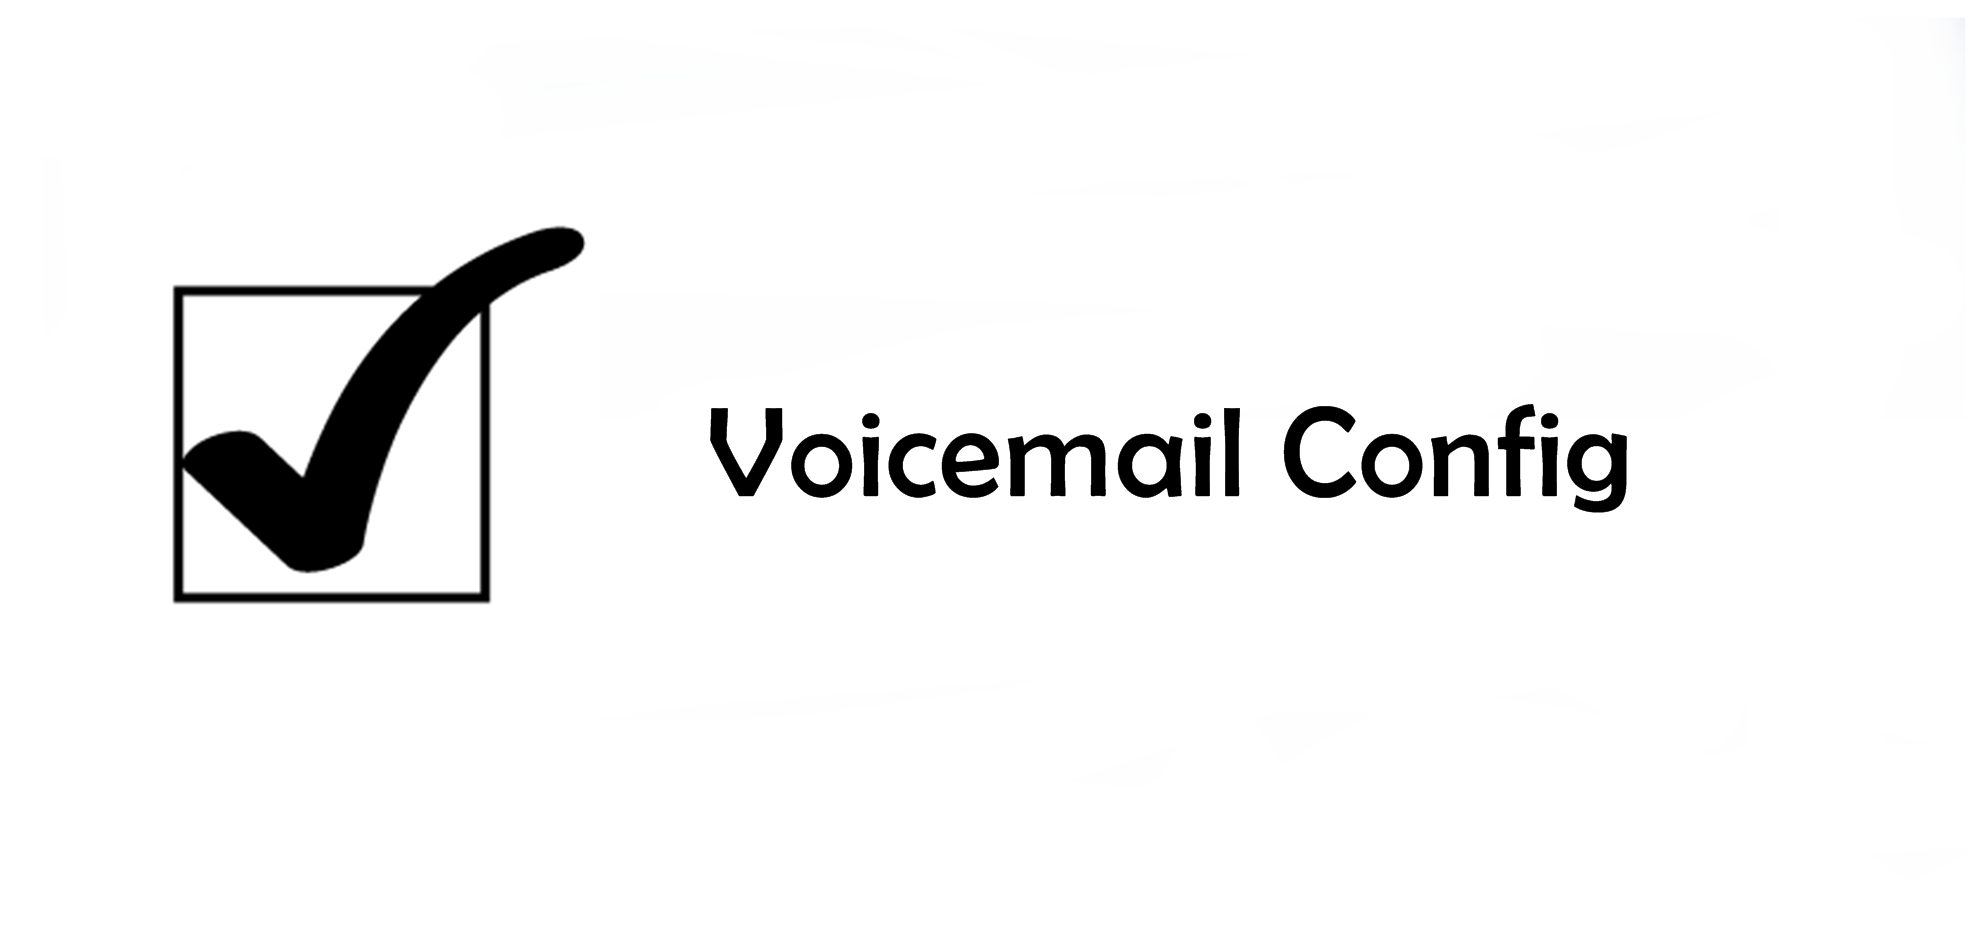 Voicemail Config